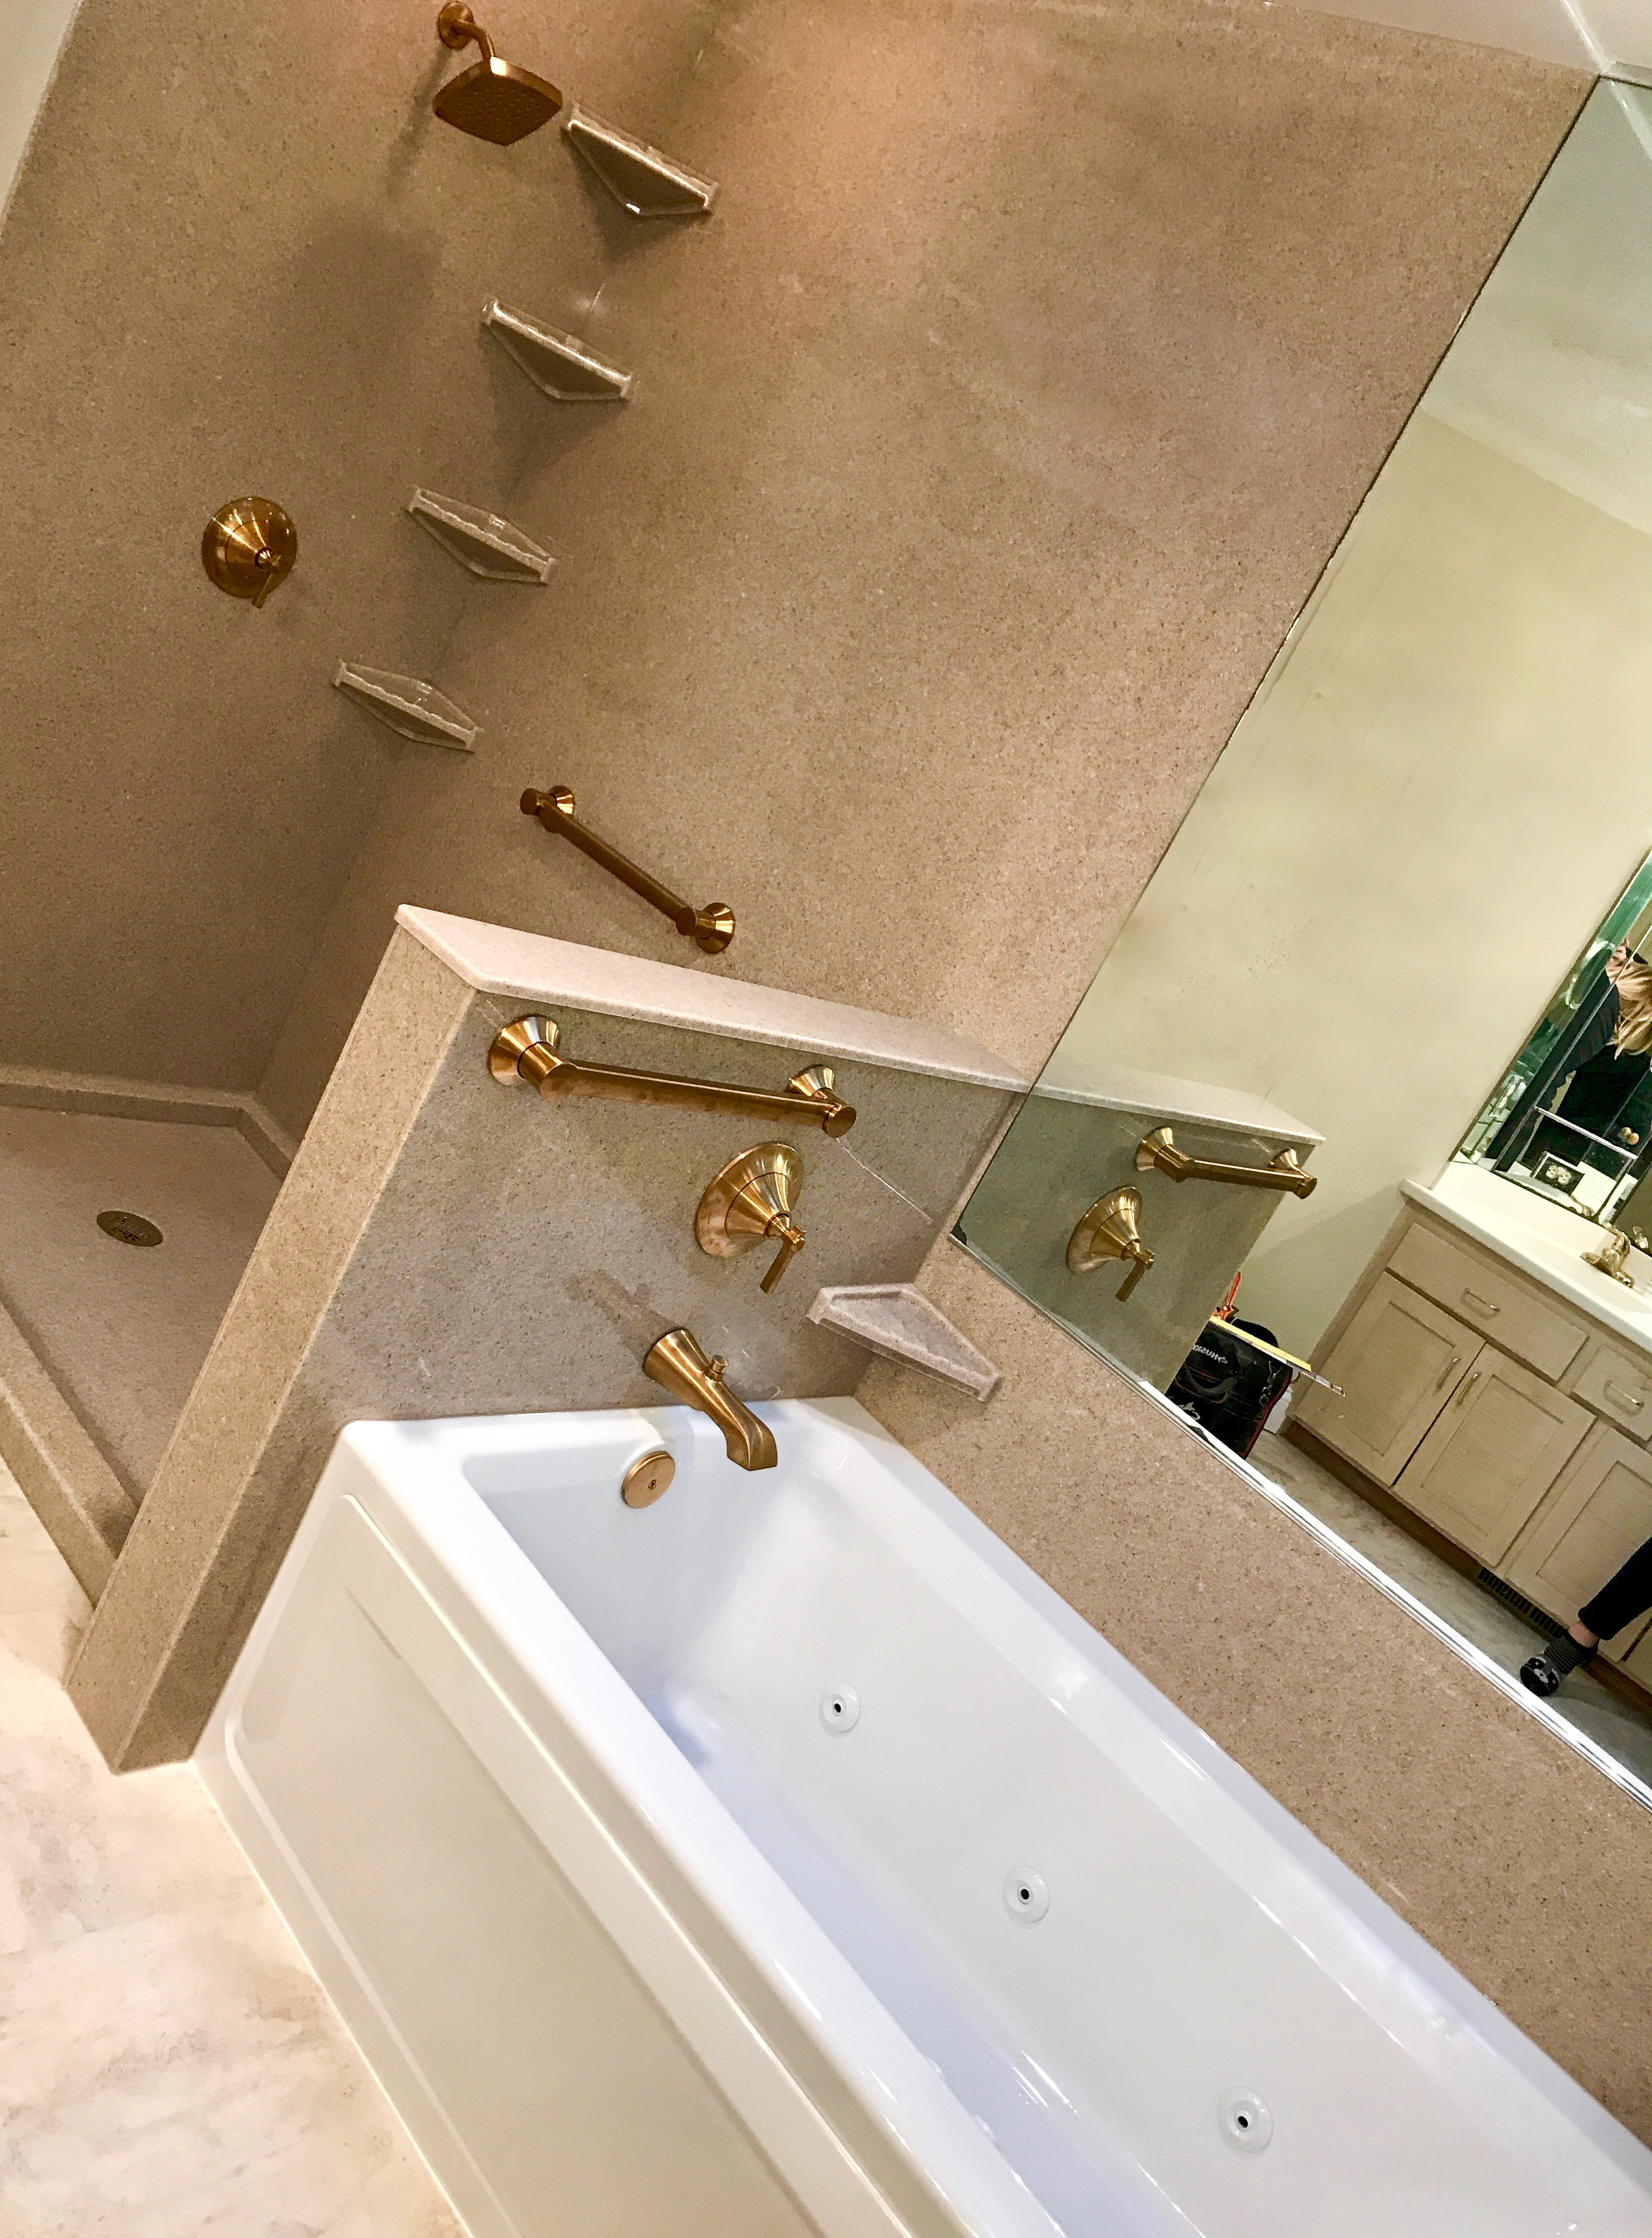 Onyx Walk-in Shower and Jacuzzi Tub